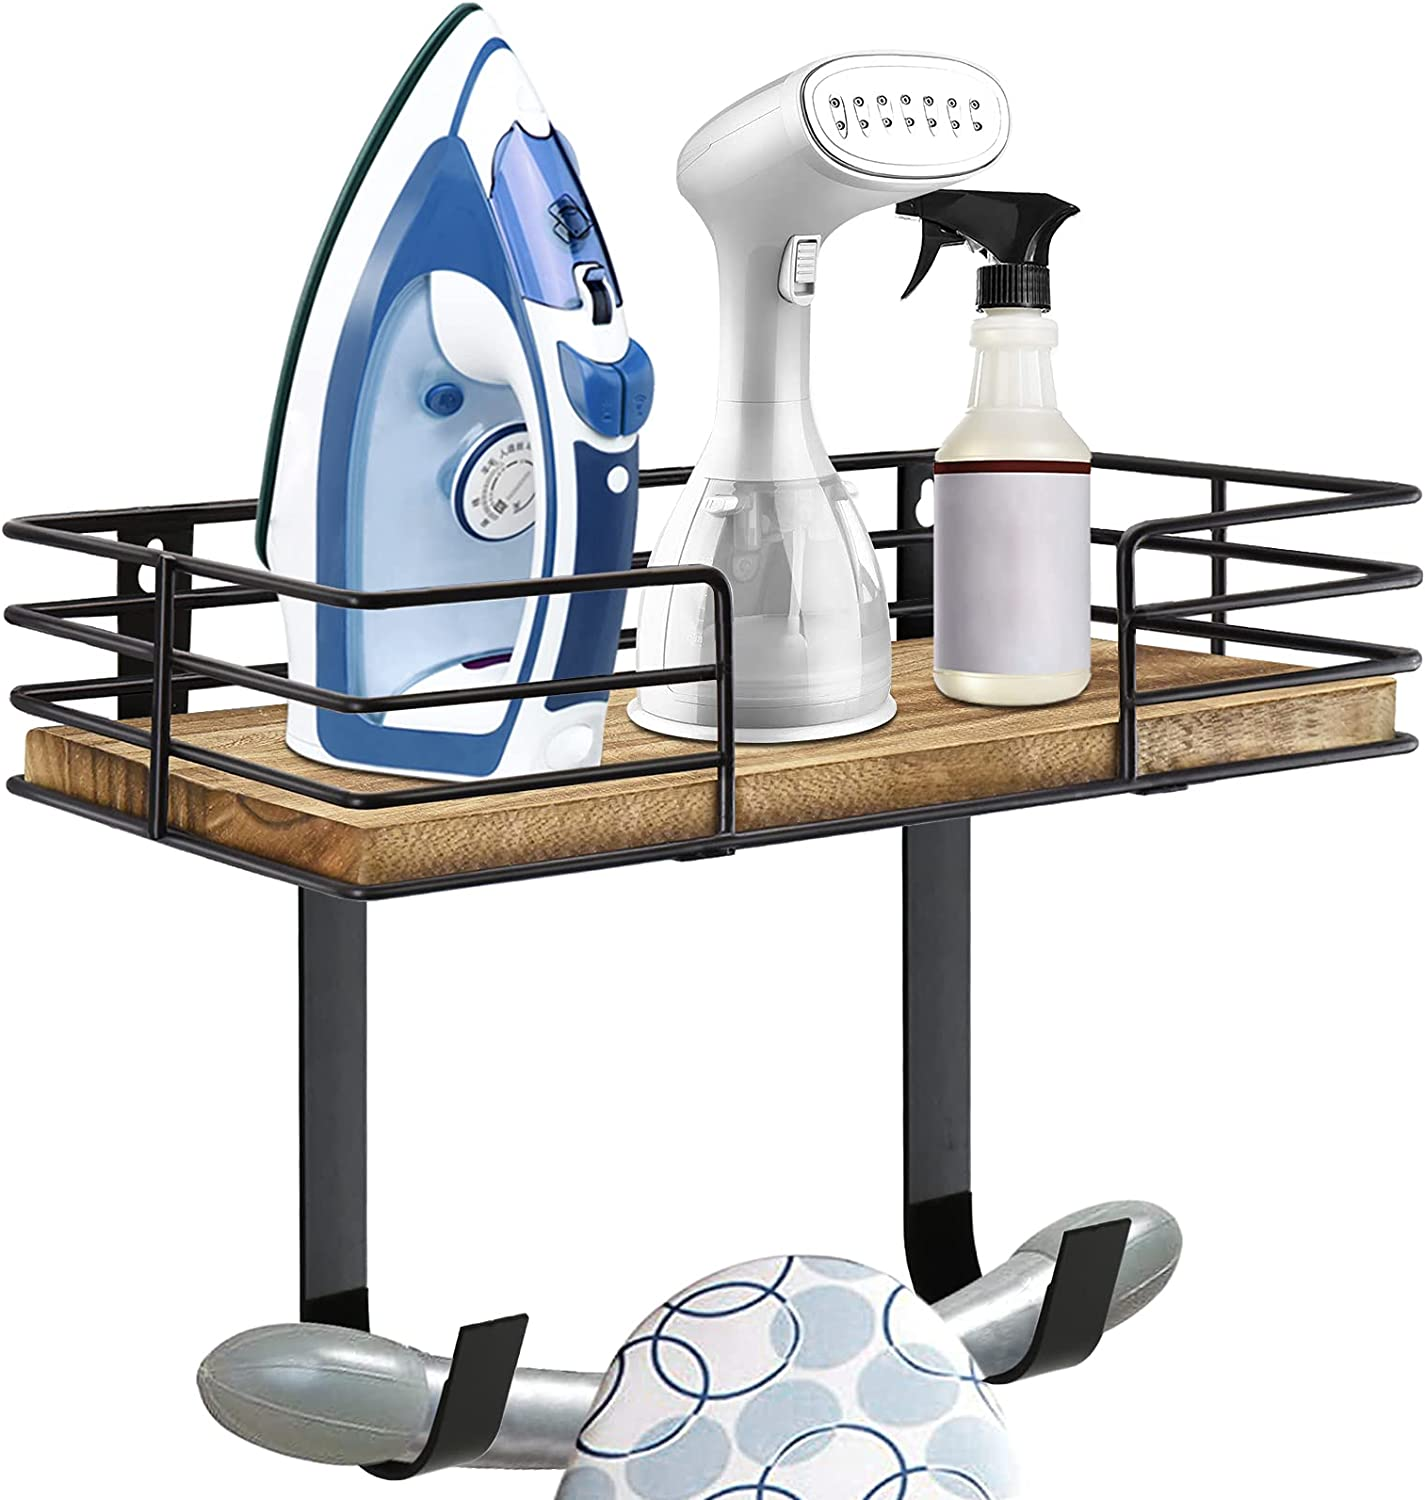 PICKKROSS Ironing Board Hanger Wall Mount, Laundry Room Iron & Ironing Board Holder with Storage Shelf,Metal Wall Mount Ironing Board Holder with Large Storage Basket&Removable Hooks for Laundry Room